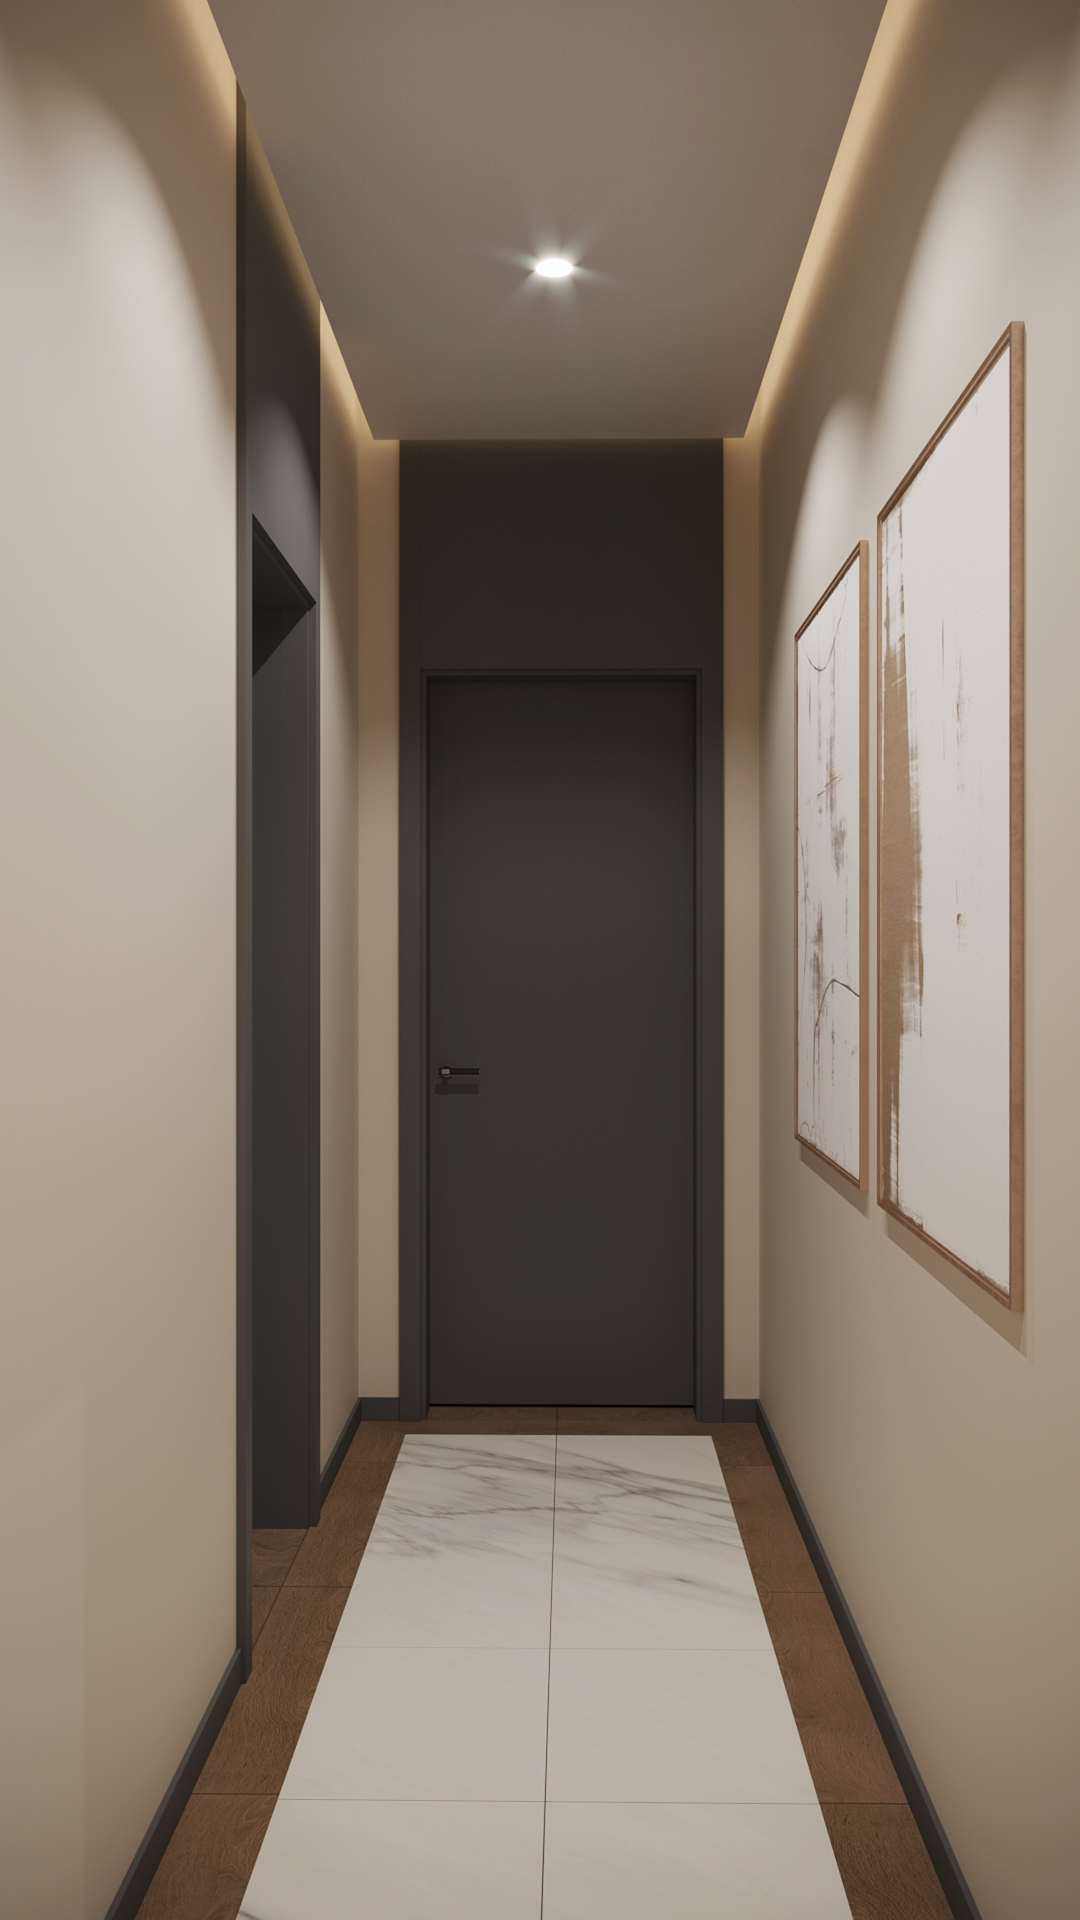 LuxeHome_Hallway_004